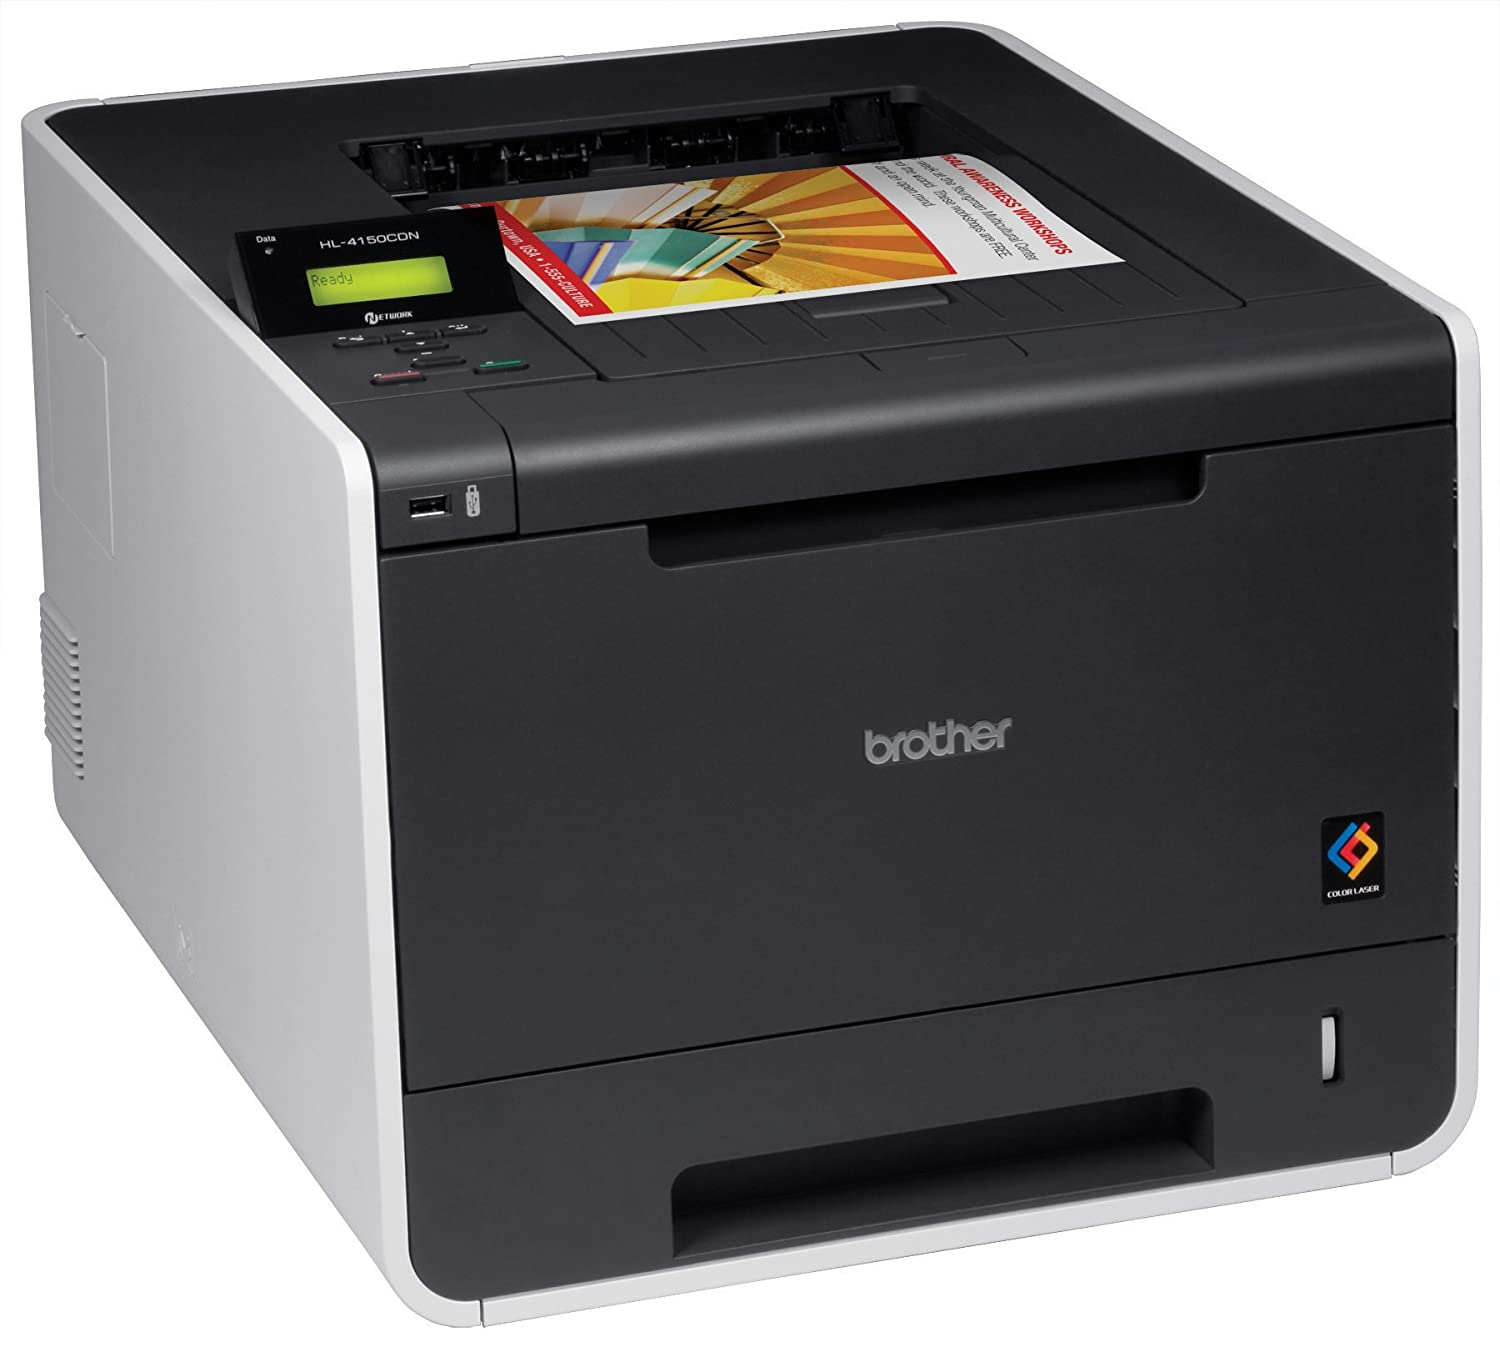 BROTHER HL-4150CDN PRINTER BR-SCRIPT WINDOWS 8 DRIVER